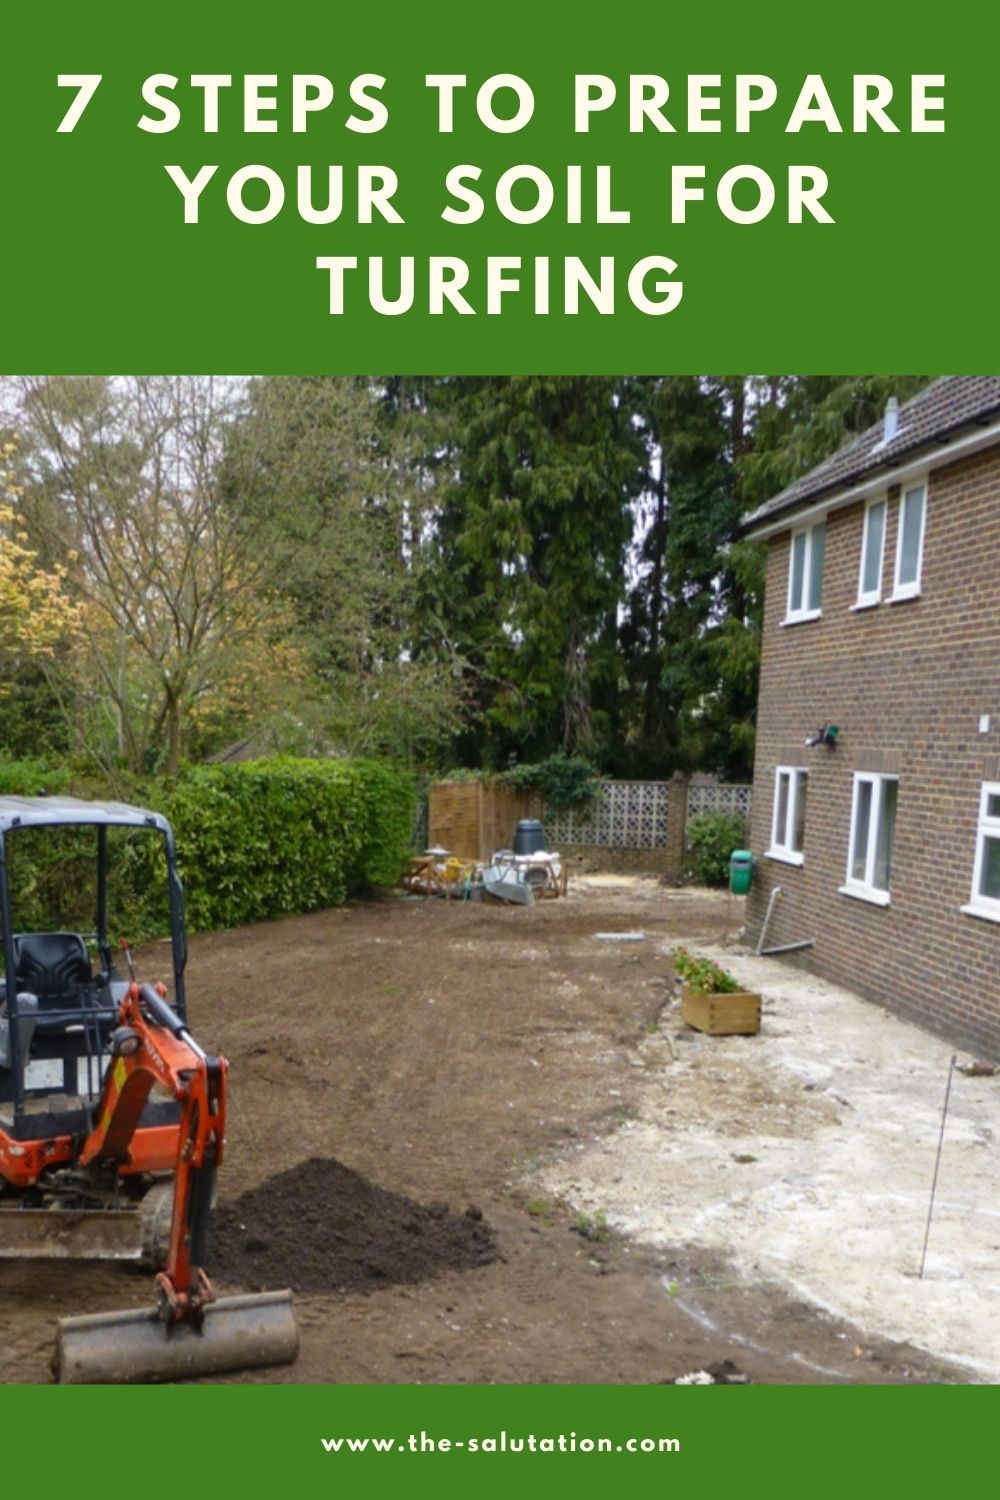 7 Steps to Prepare Your Soil for Turfing 2